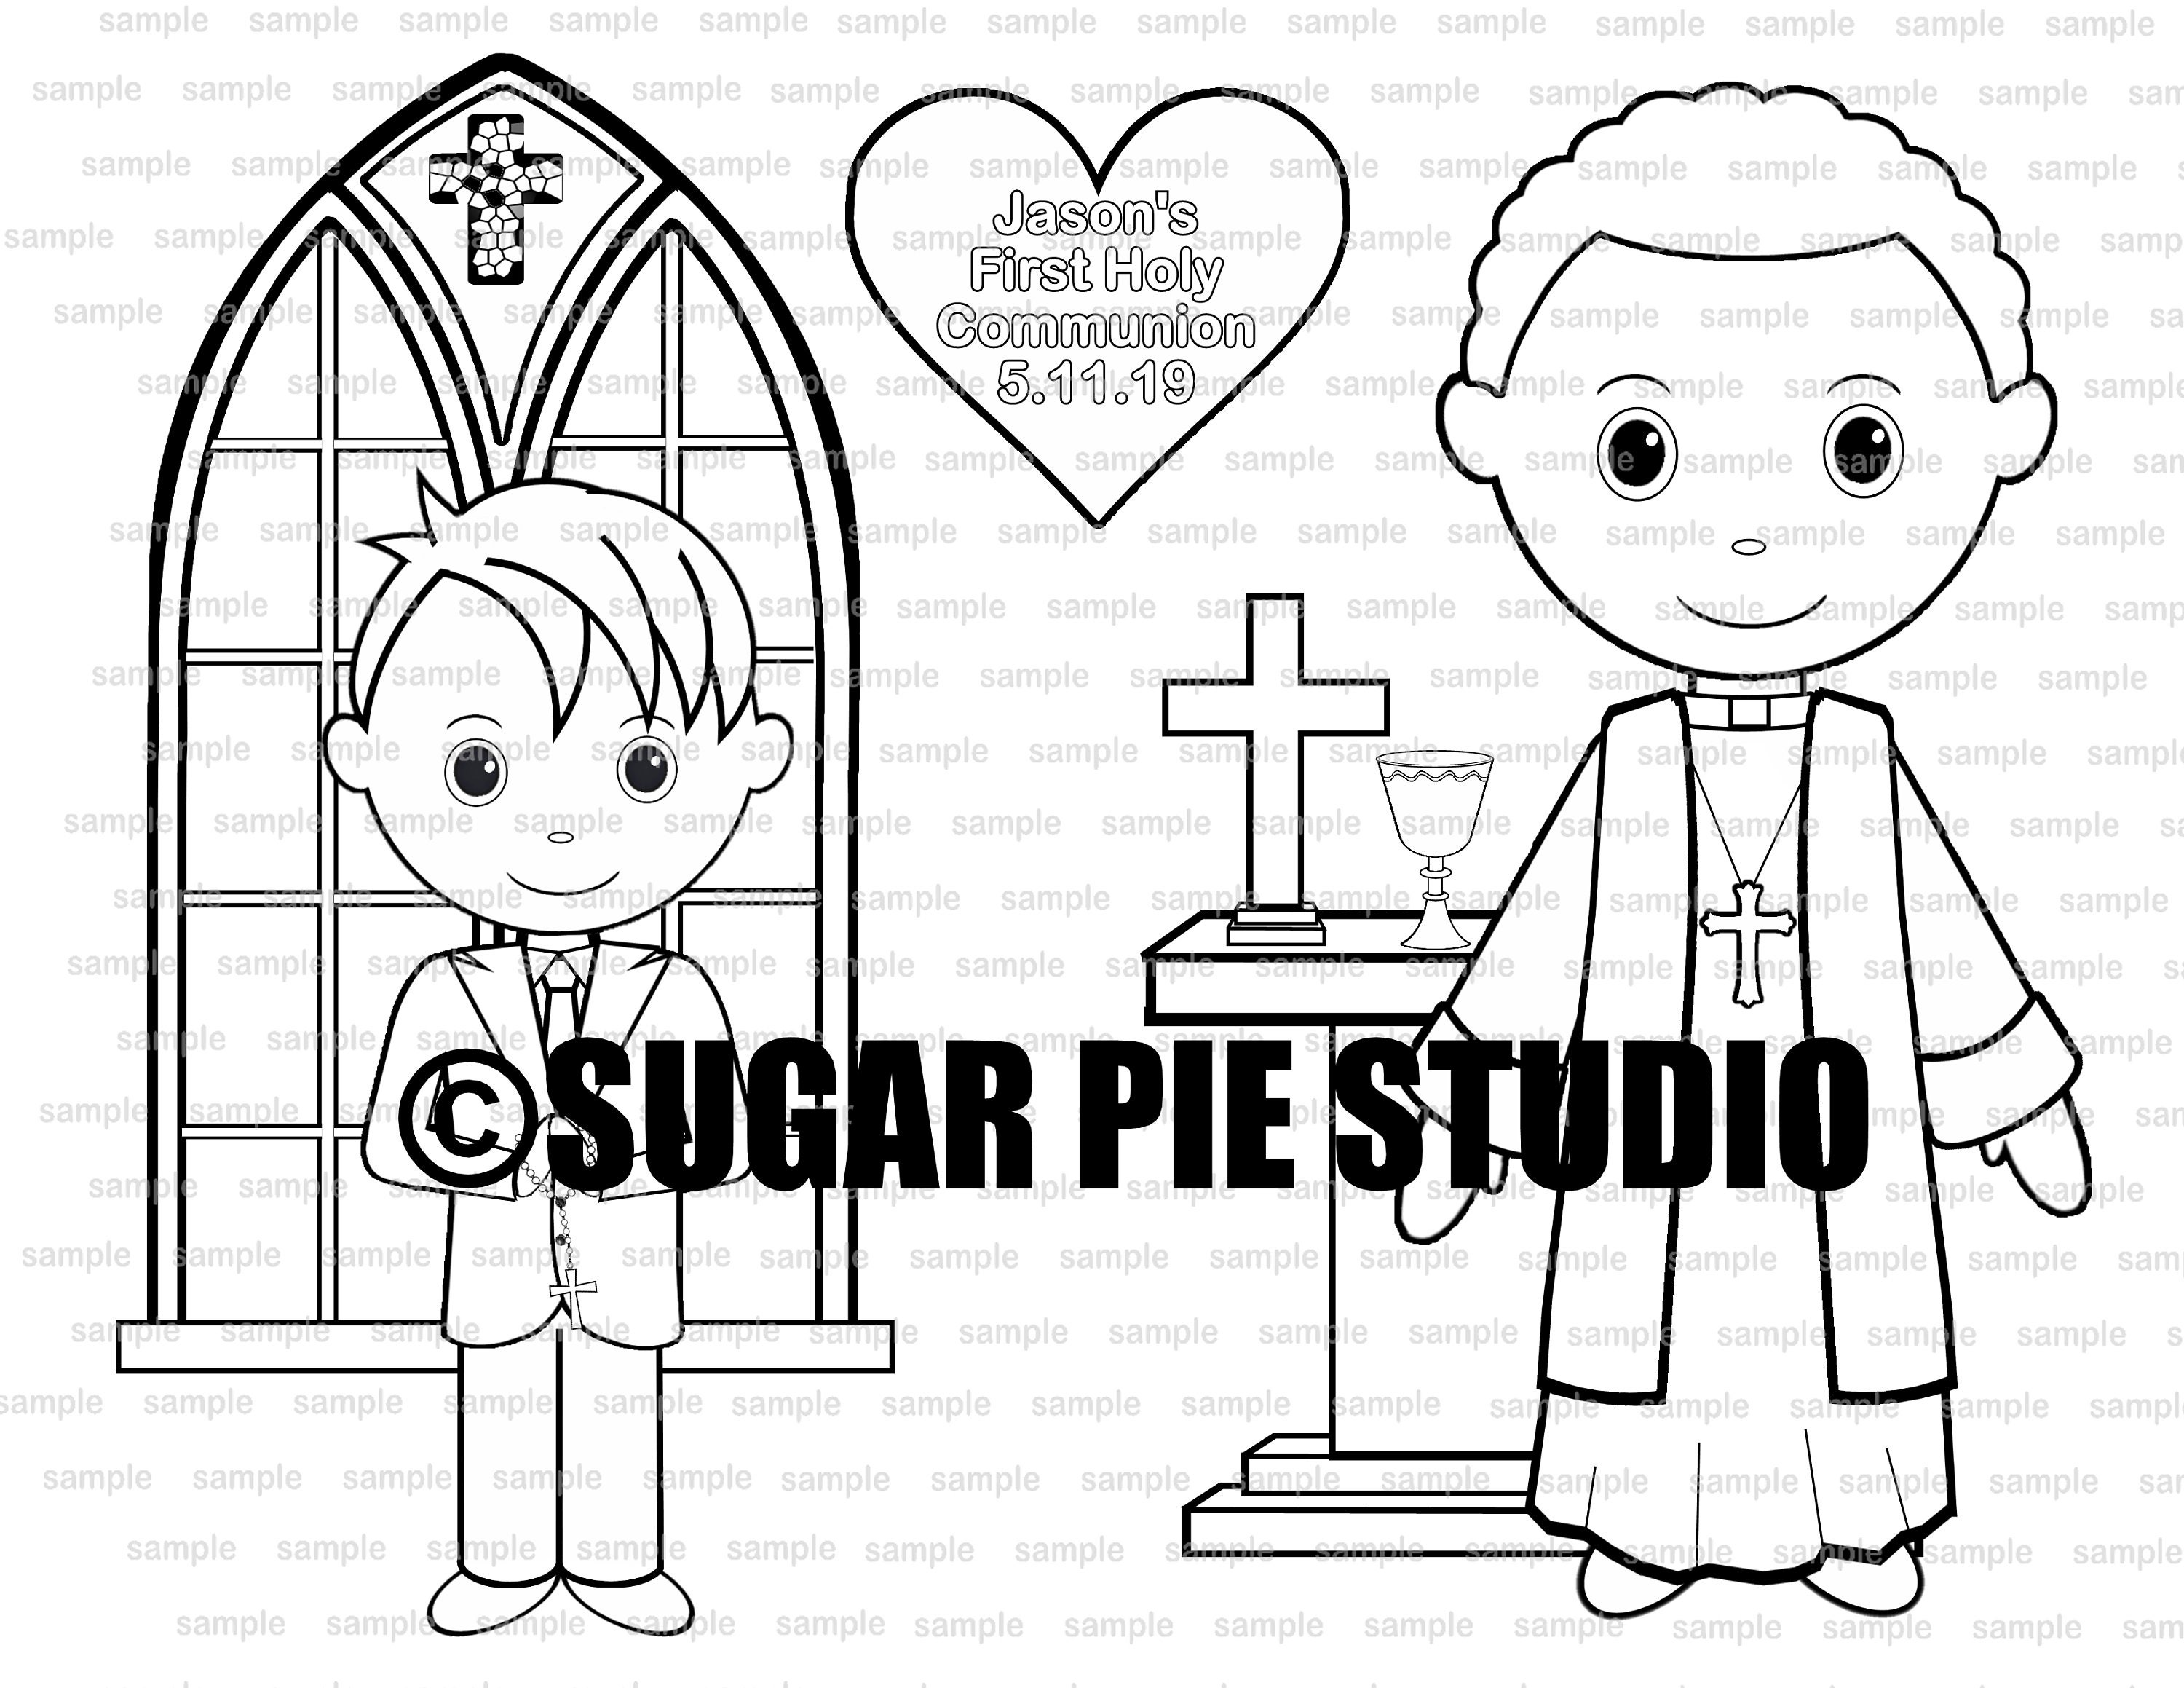 - First Holy Communion Coloring Activity Page PDF Or JPEG TEMPLATE